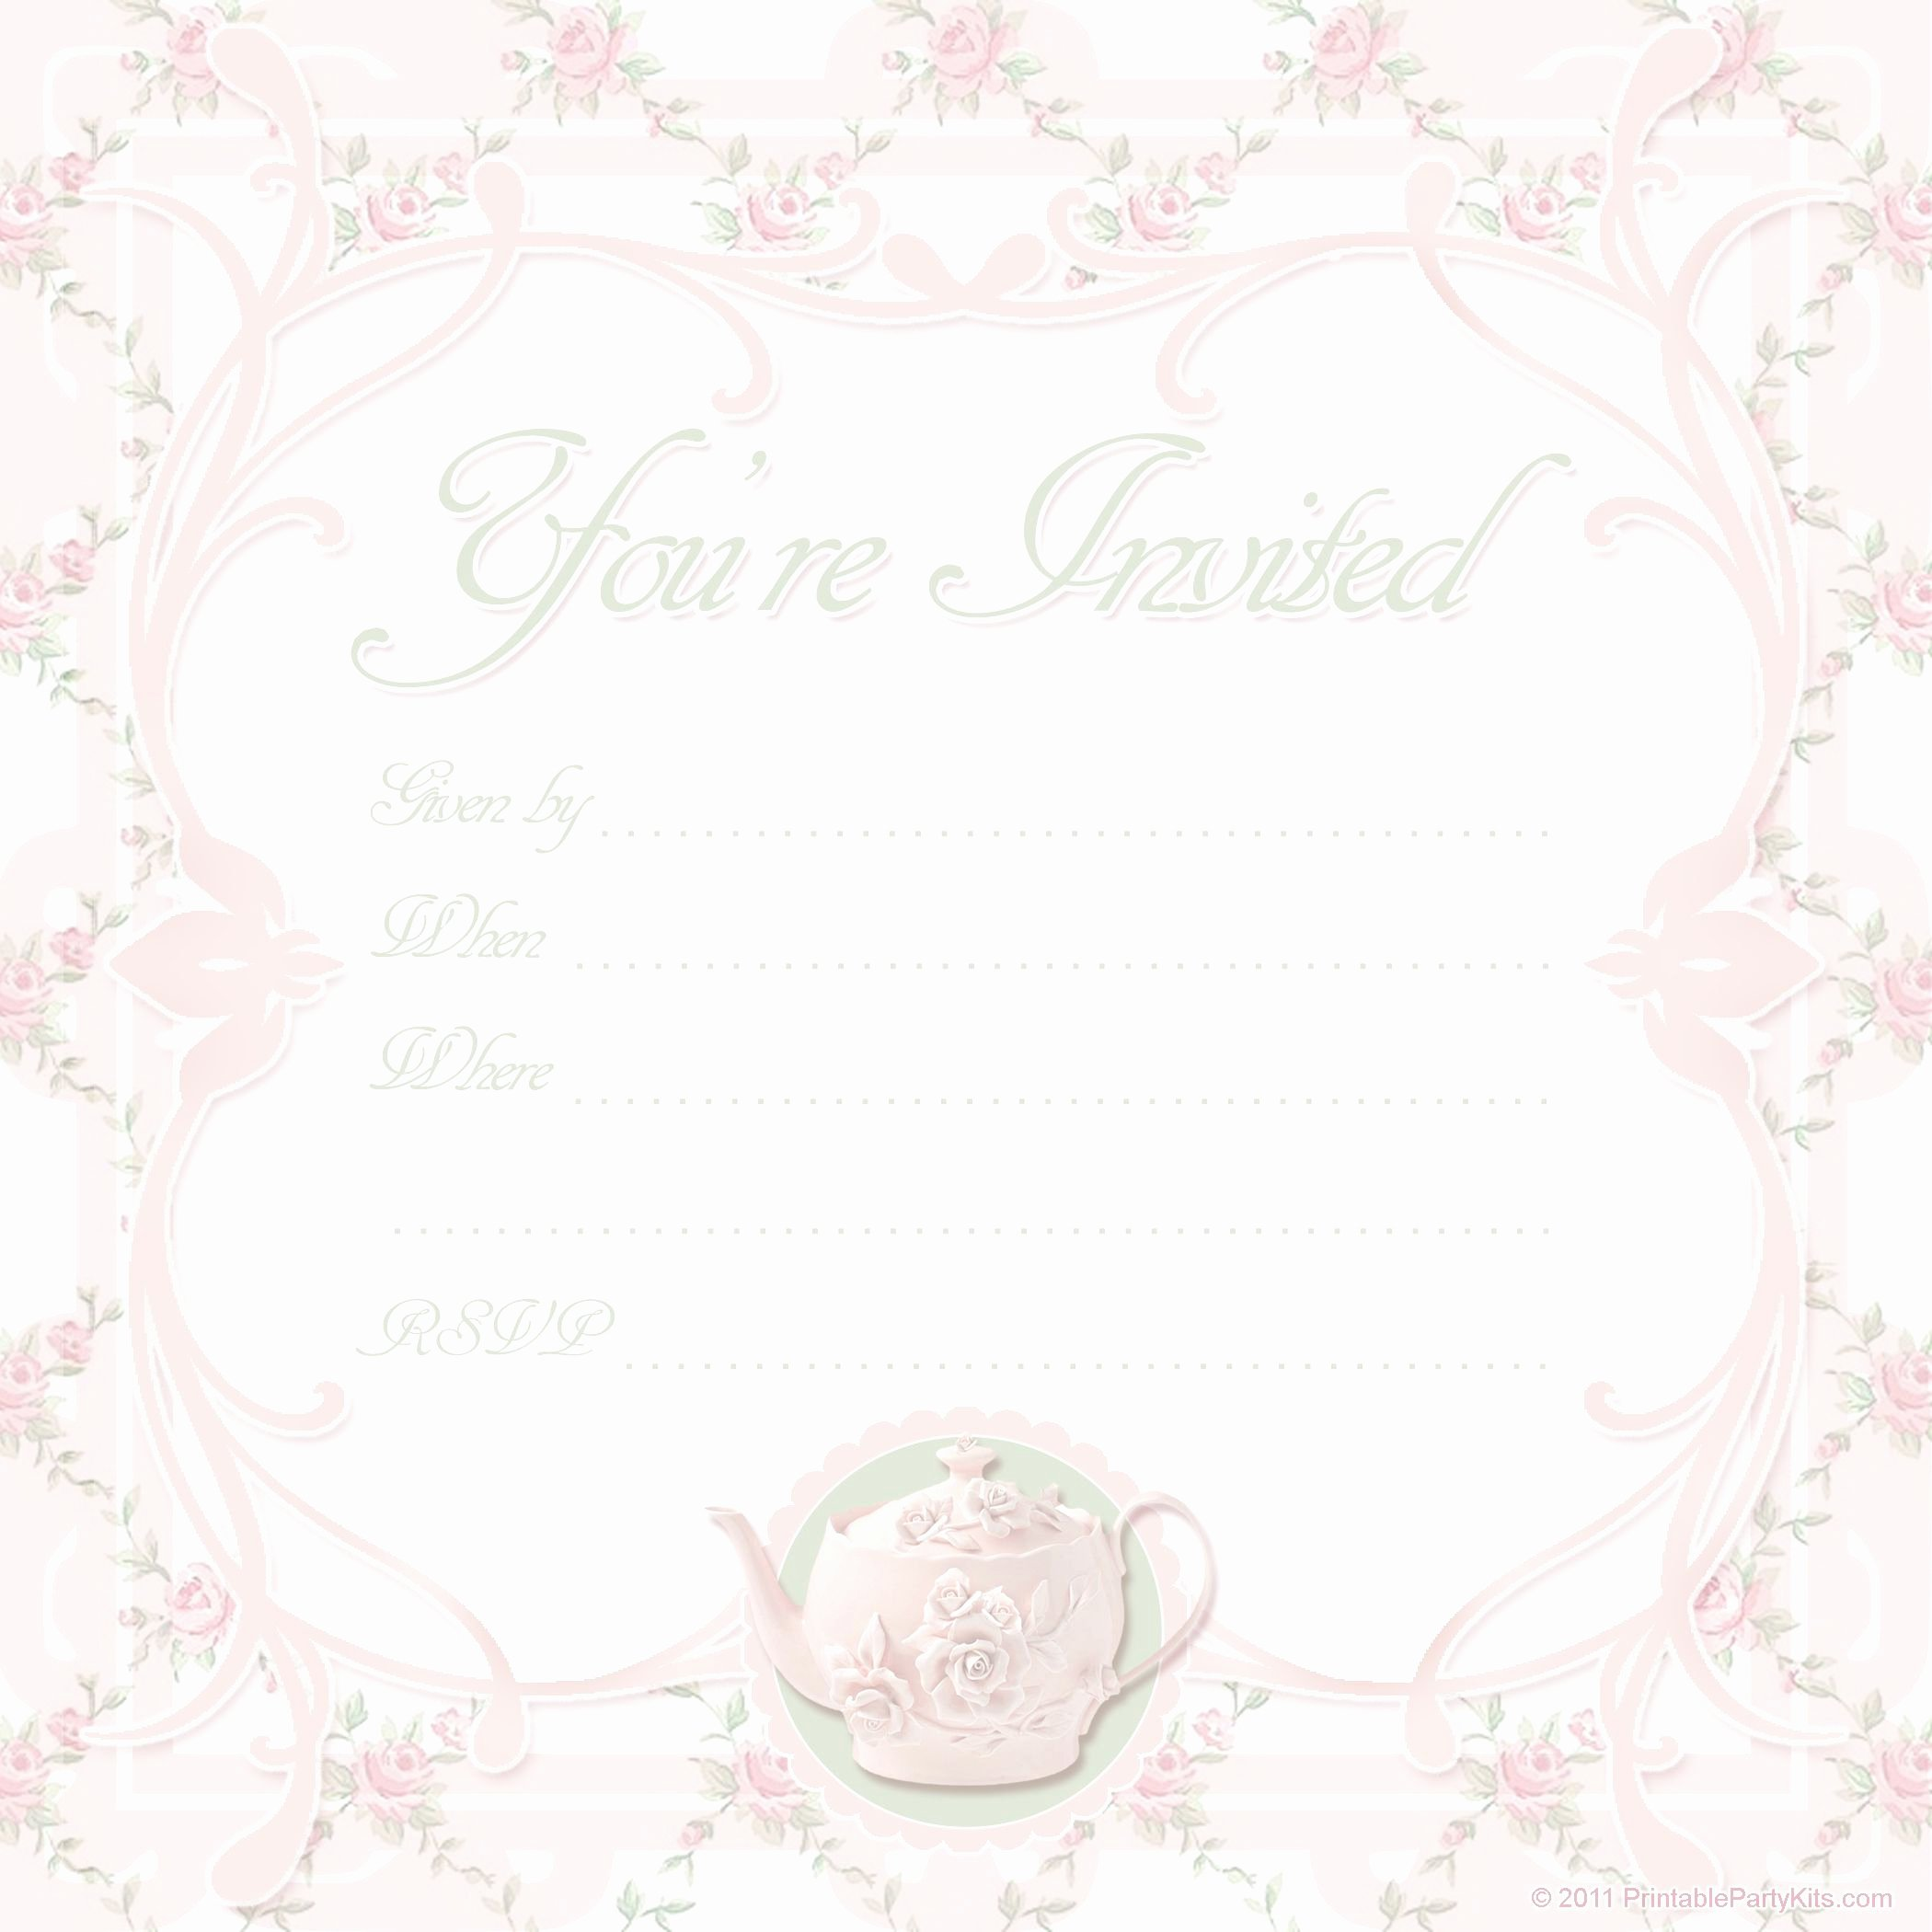 Tea Party Invitation Template Best Of Card Template Blank Invitation Templates Free for Word Card Invitation Templates Card